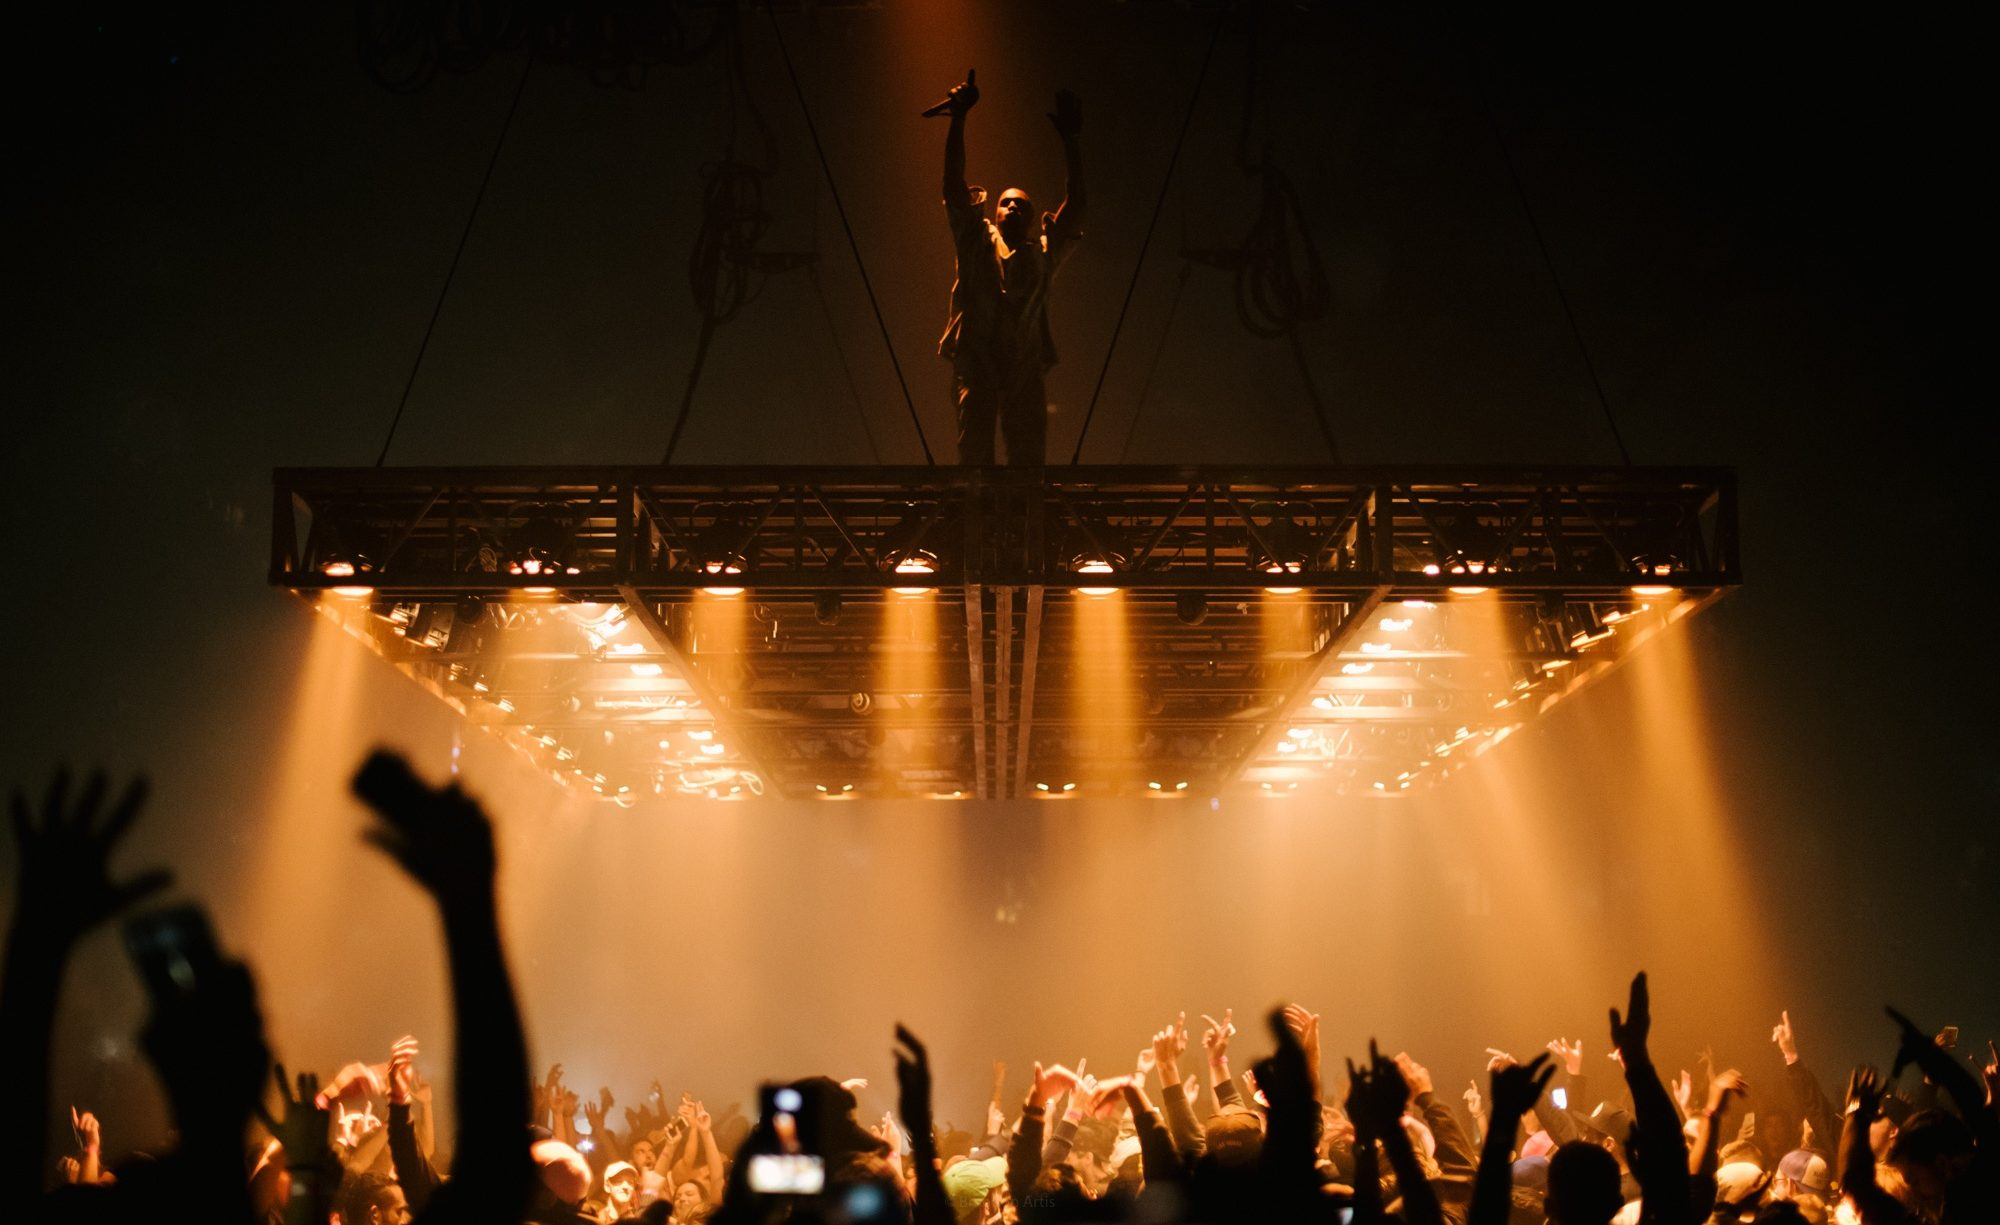 Kanye West floats his way to forgiveness at Vancouver concert (PHOTOS)